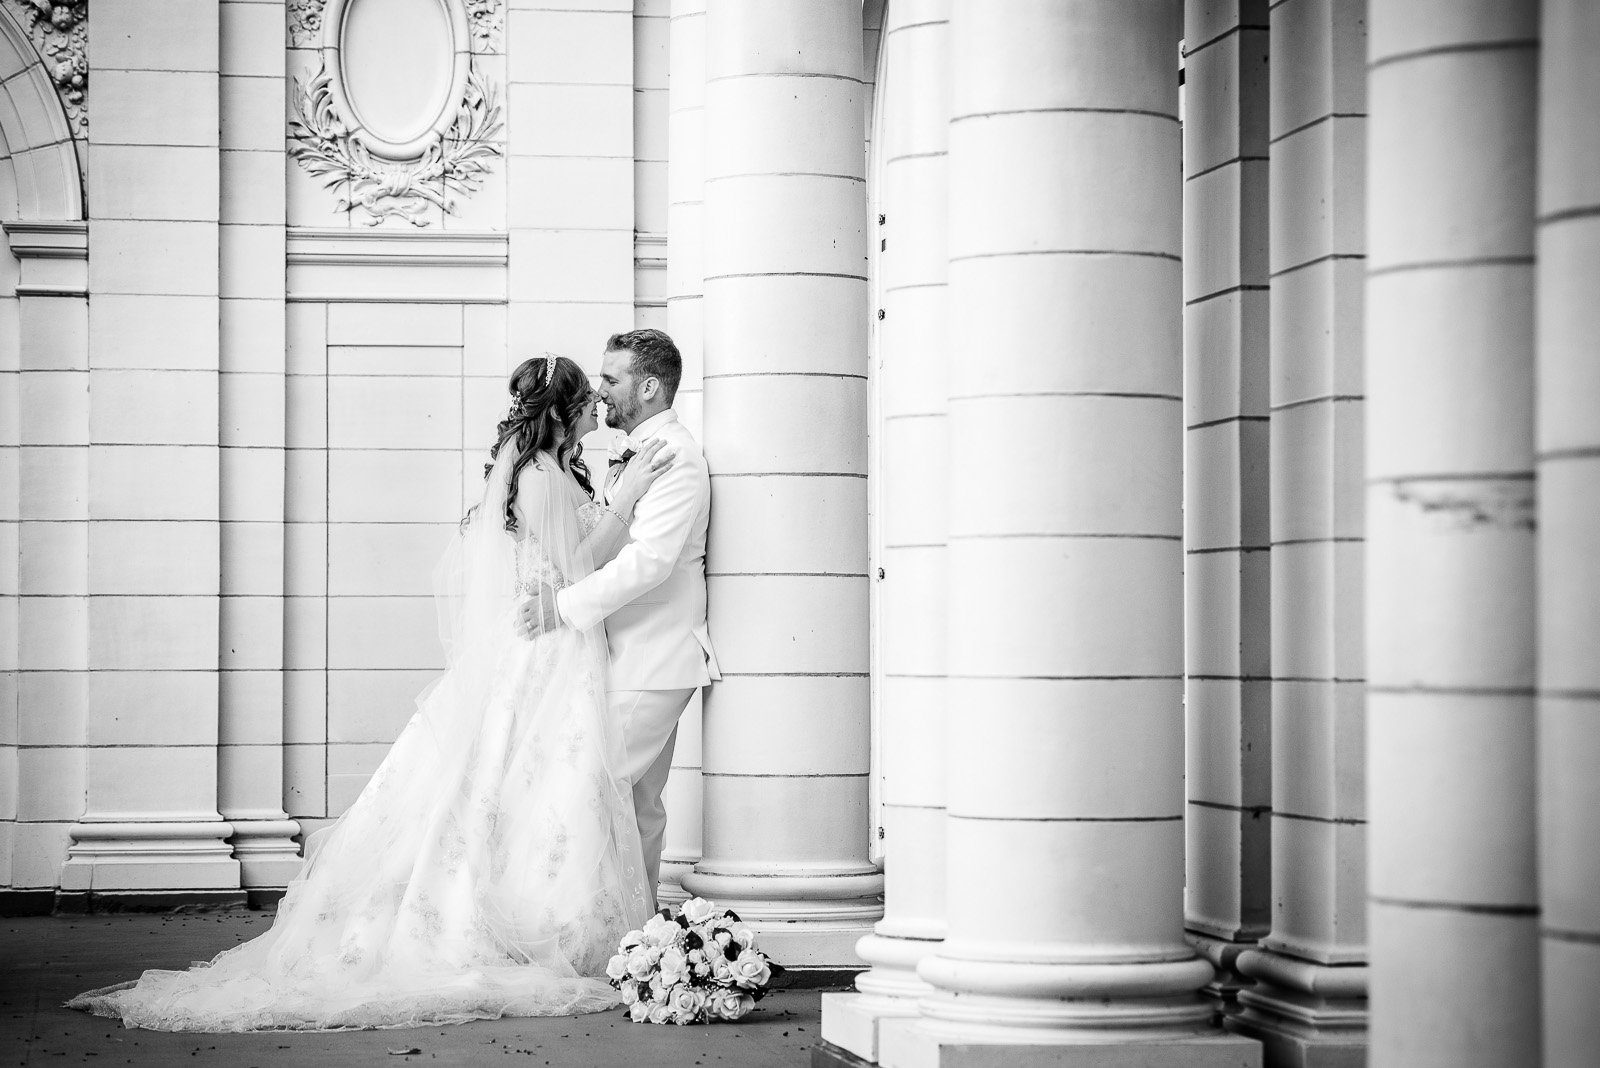 Eric_and_Christy_Photography_Blog_Wedding_Eva_Andrew-48